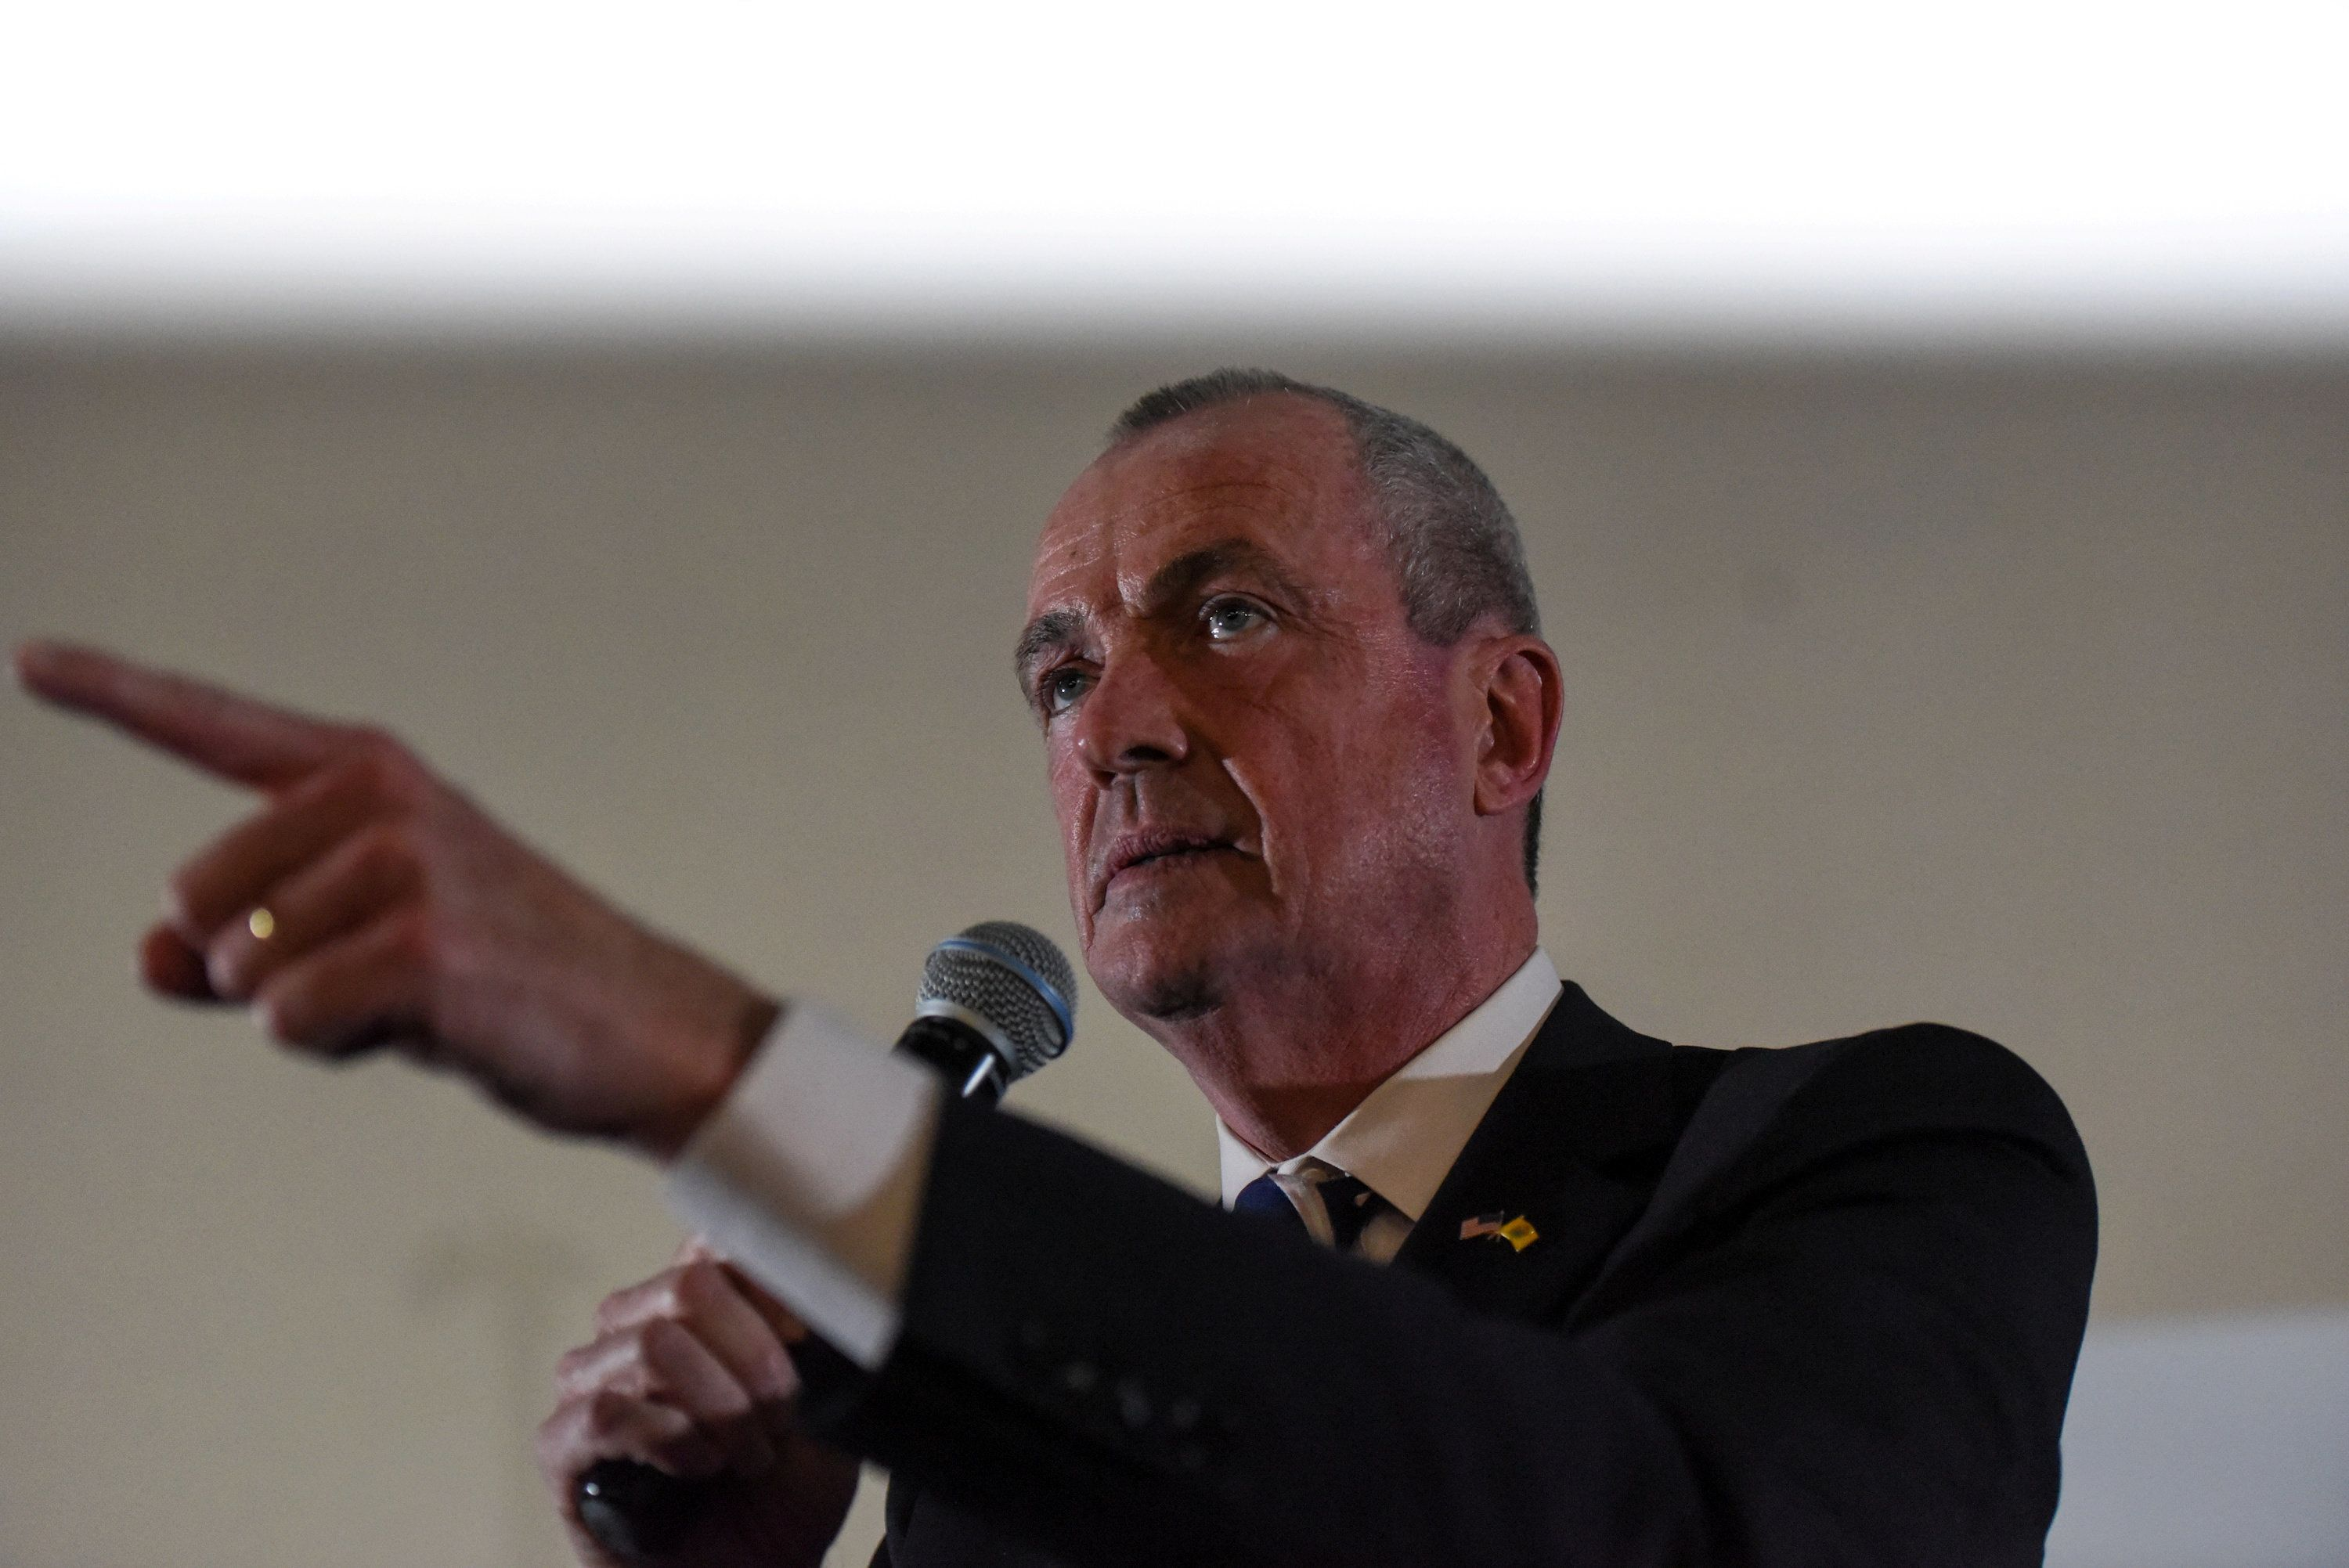 Phil Murphy, a candidate for governor of New Jersey, speaks during the First Stand Rally in Newark, N.J., U.S. January 15, 2017. REUTERS/Stephanie Keith